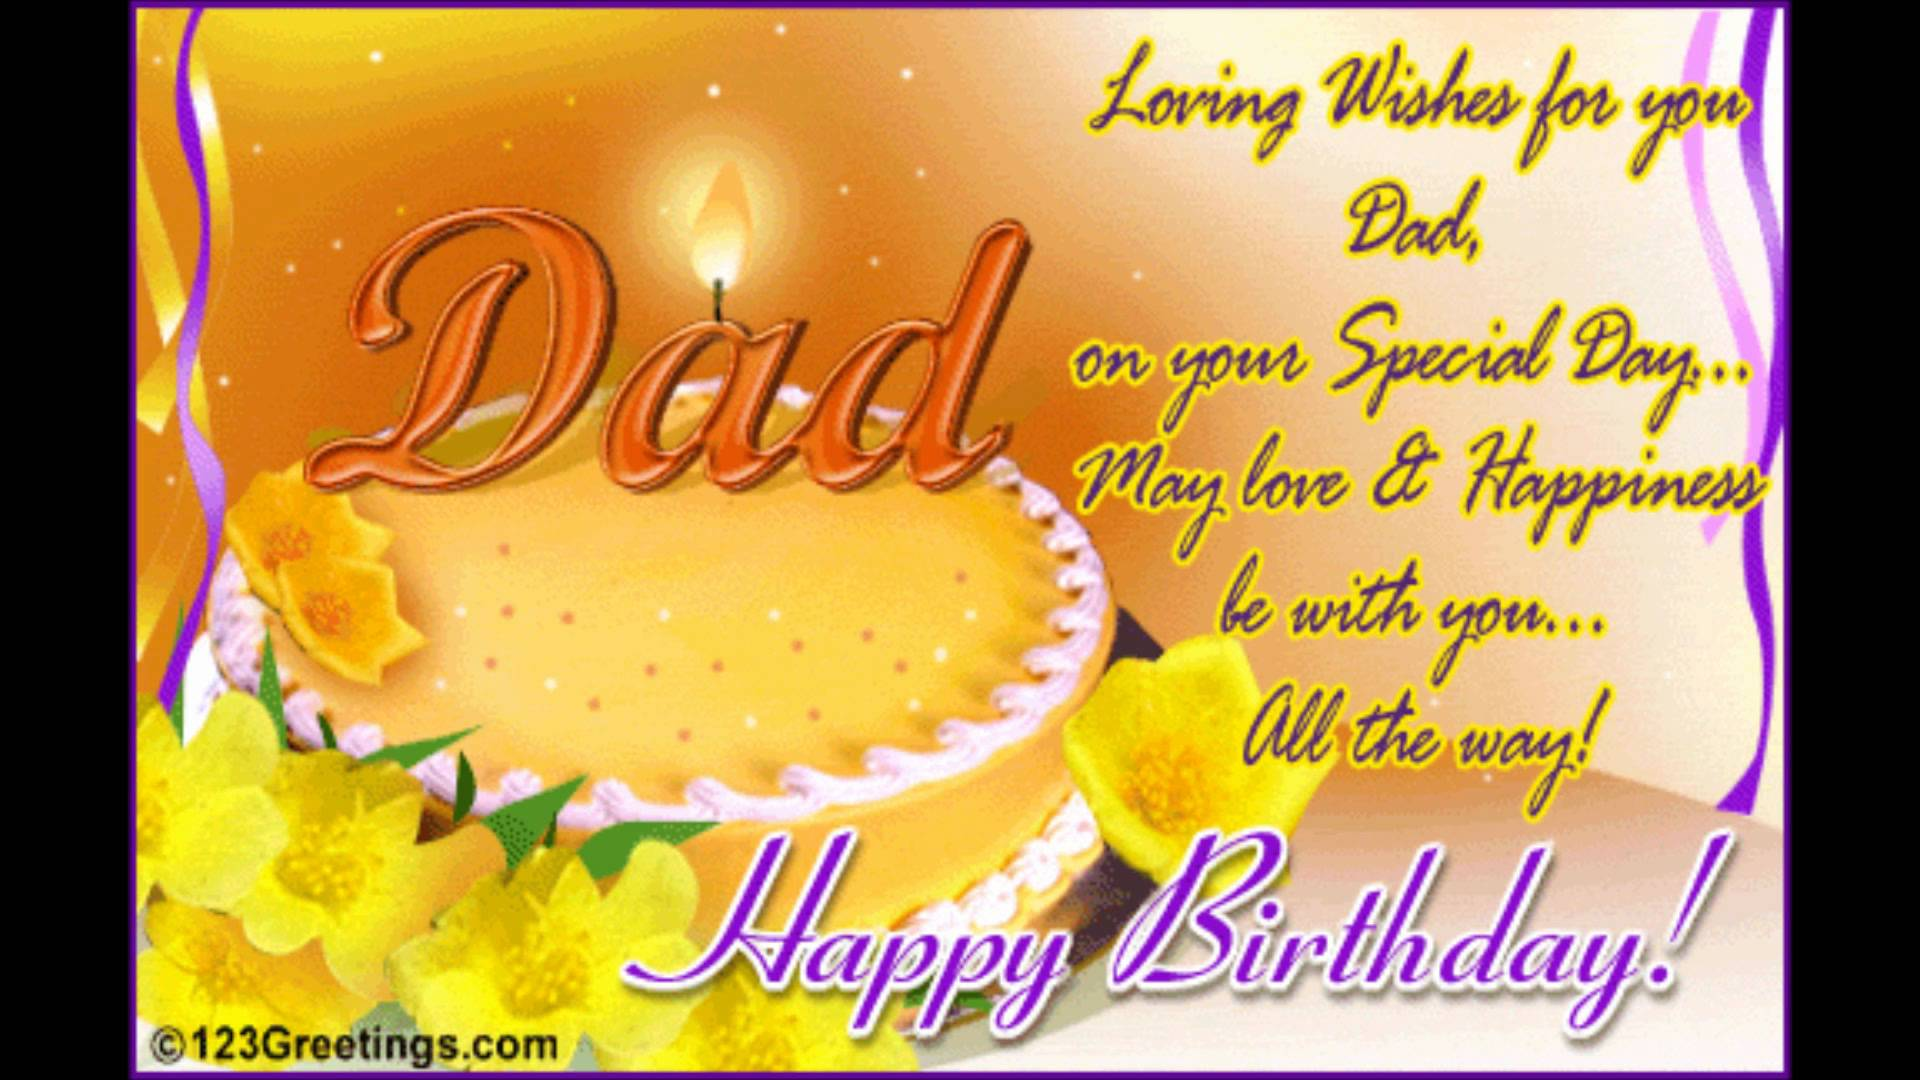 Happy Birthday Father Greetings Images Greetings Card Design Simple